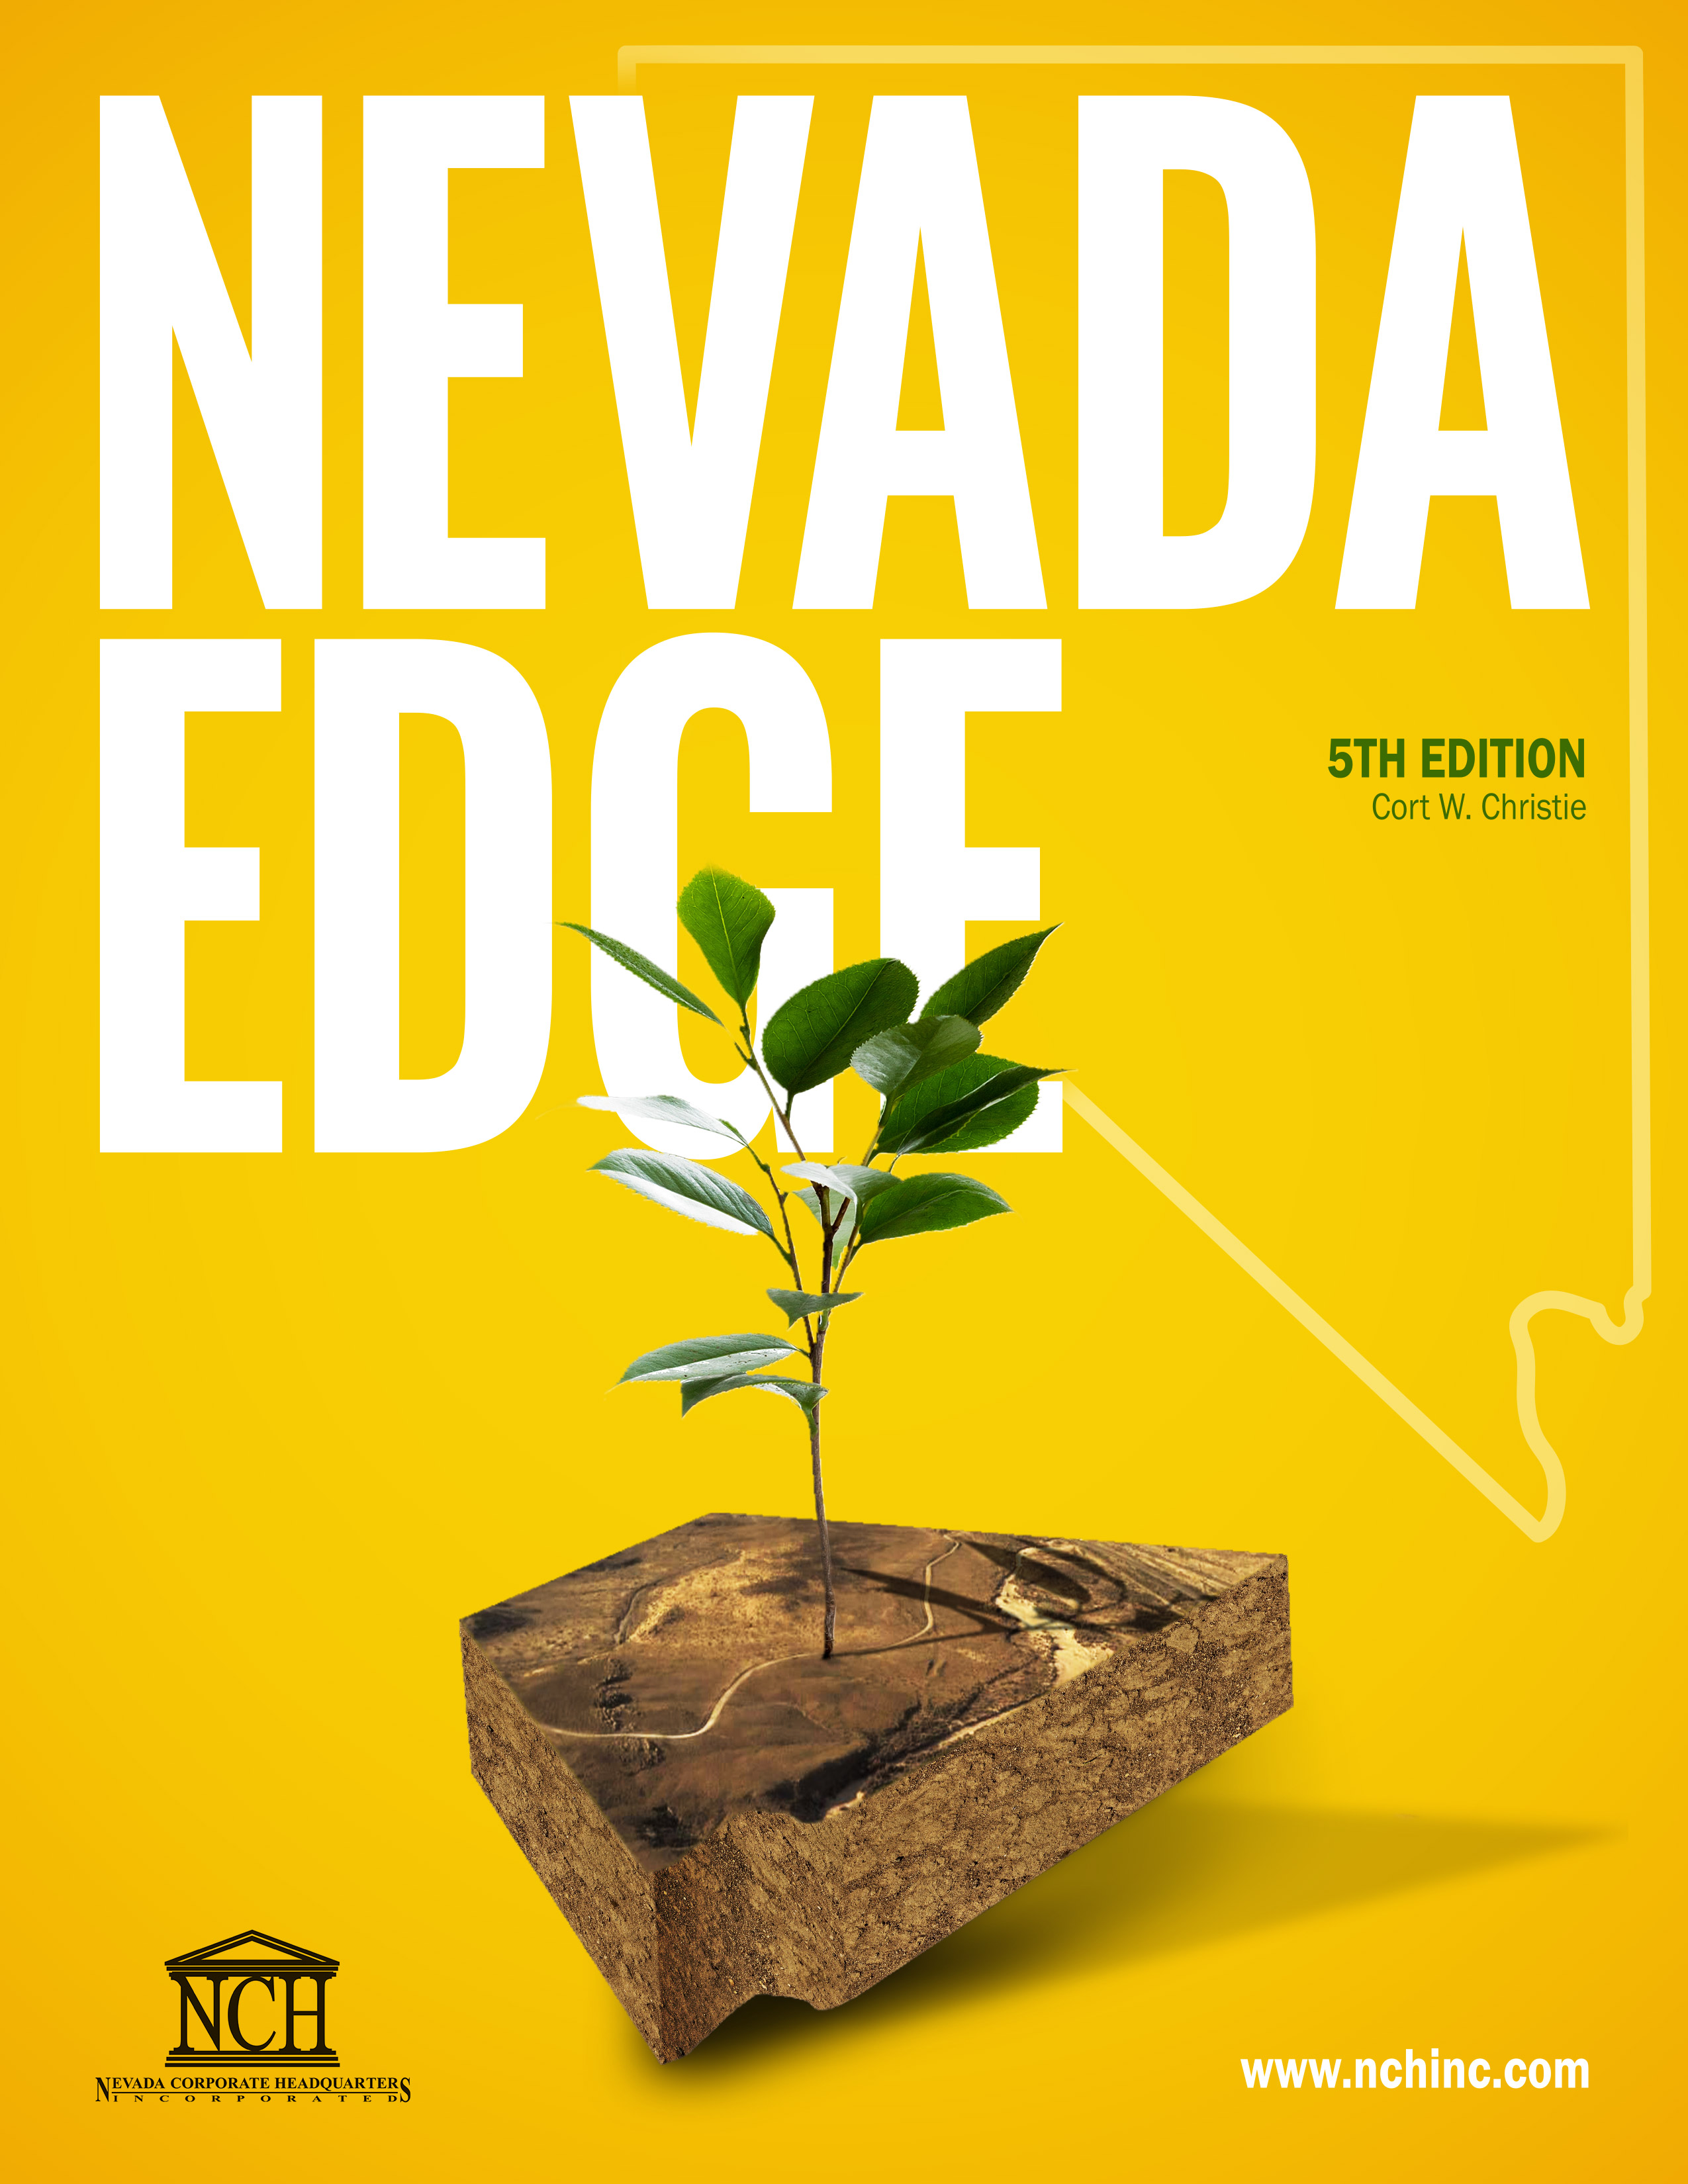 The Nevada Edge - 5th Edition